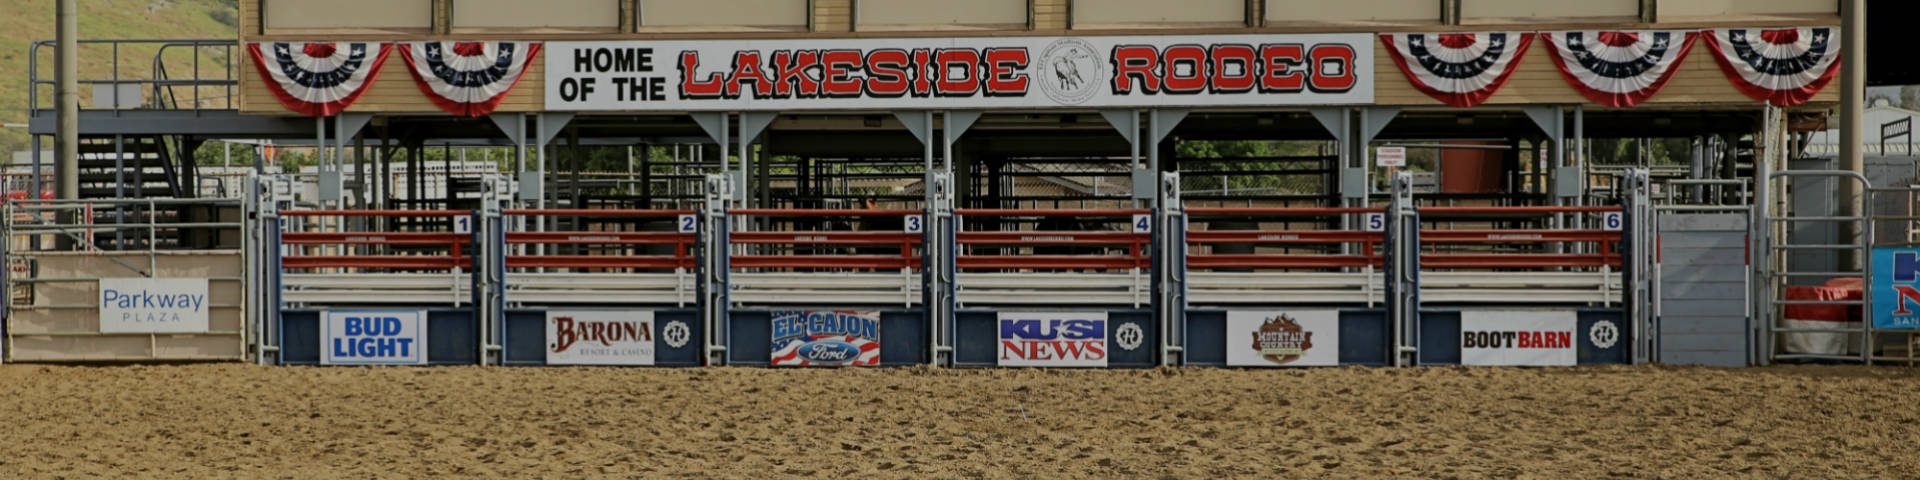 lakeside-rodeo-chute.jpg